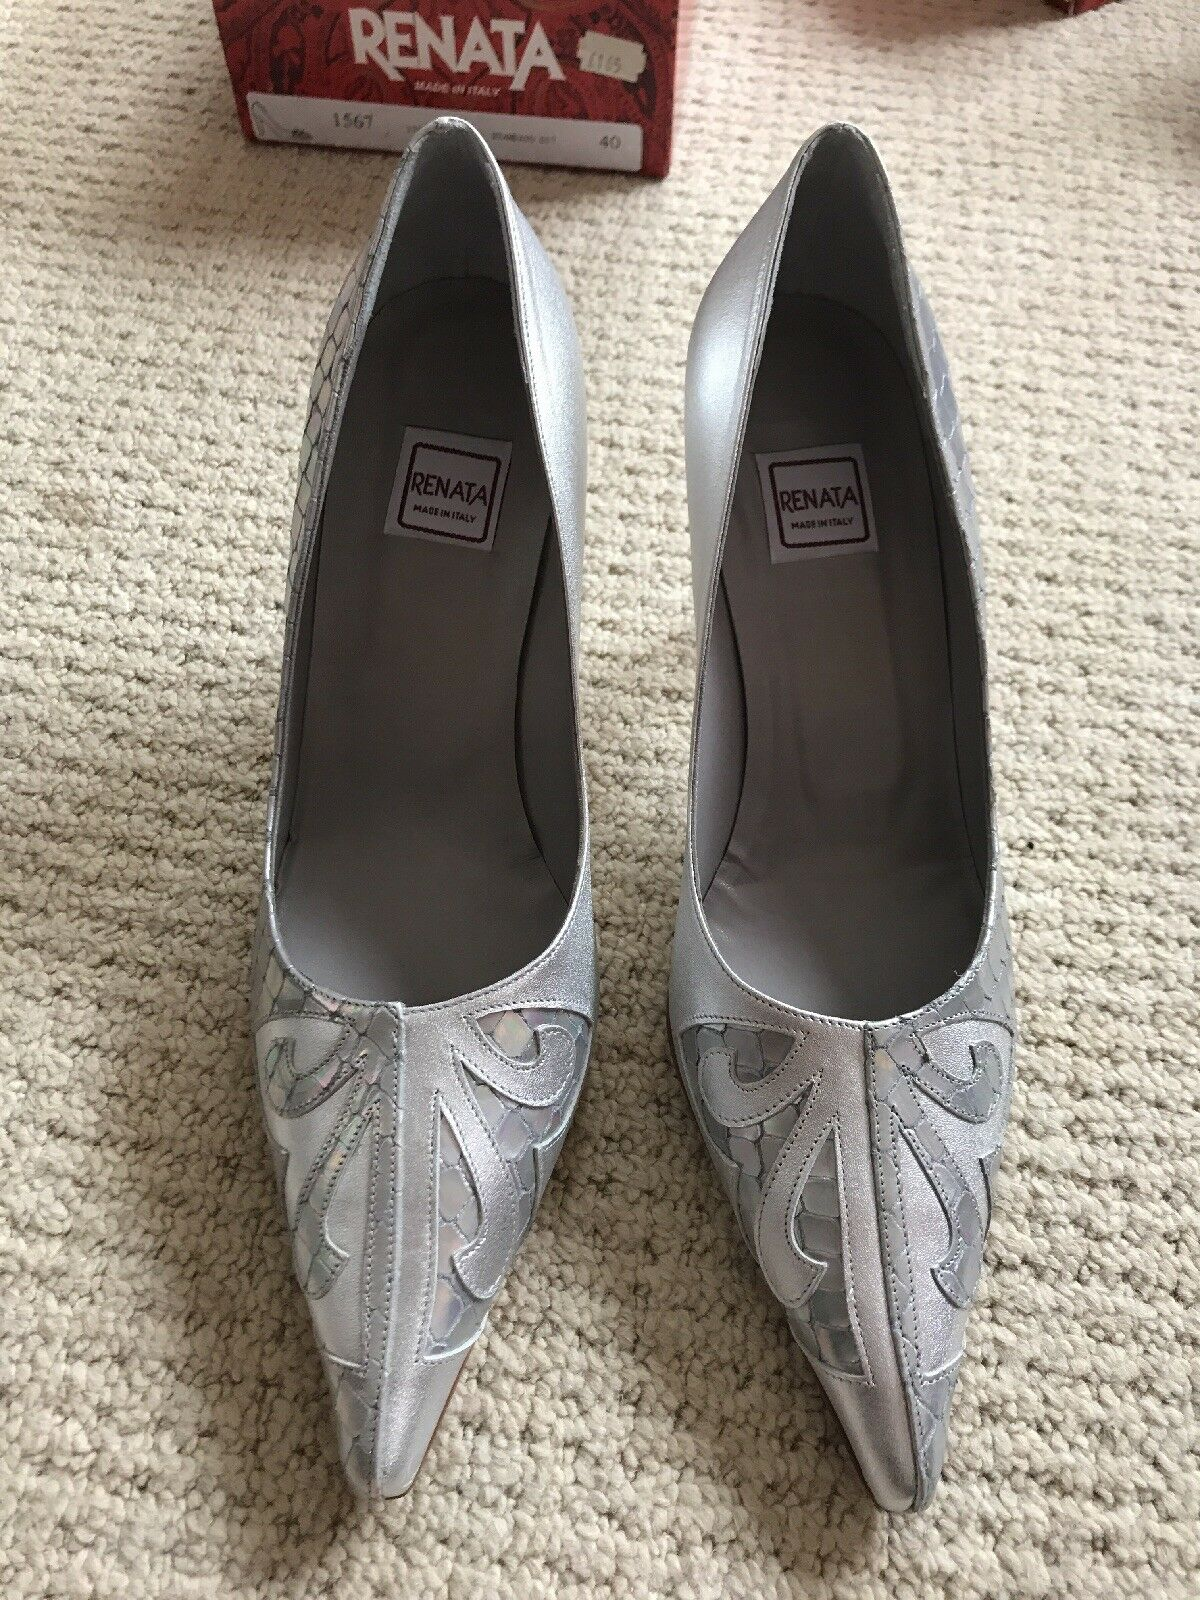 Gentlemen/Ladies Renata Silver Court Size 38 *BNIB* Good today world reputation First batch of customers Recommended today Good 892355